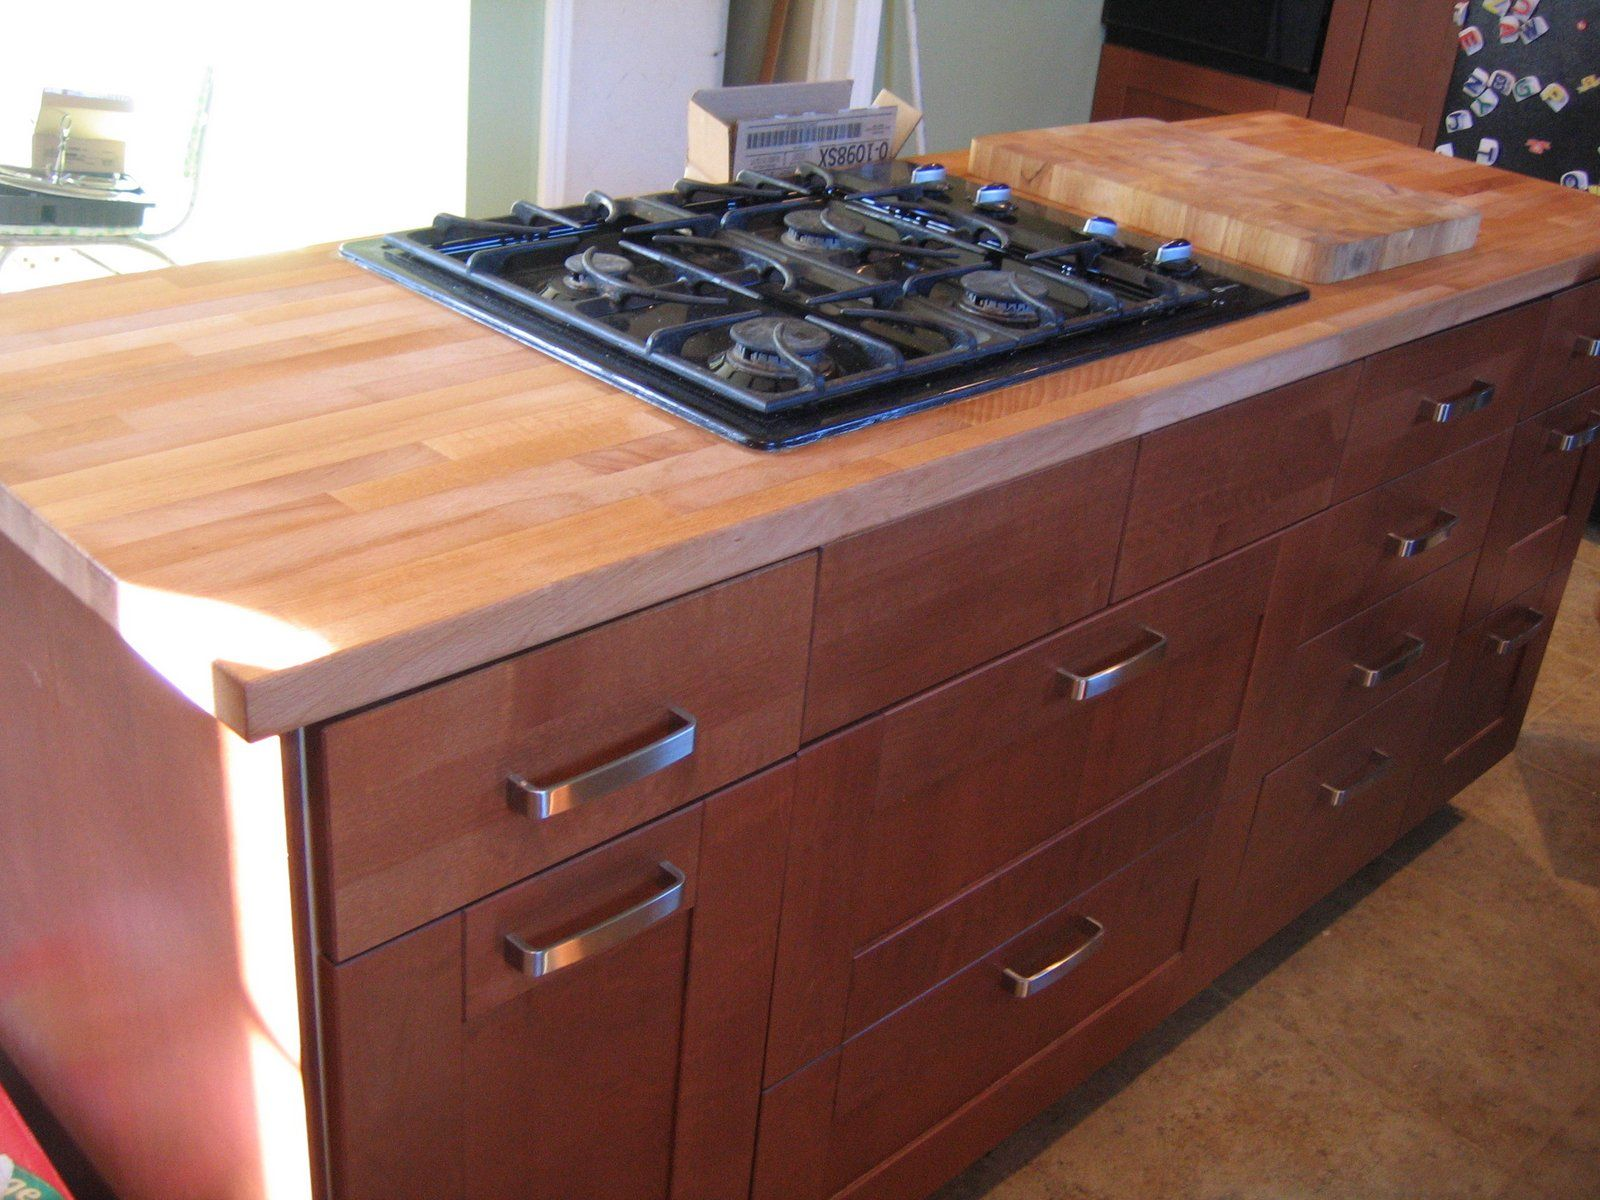 Kitchen Furniture Traditional Brown Stained Wooden Island With Wooden Butcher Block And Black Metal Diy Kitchen Furniture Butcher Block Countertops Diy Kitchen